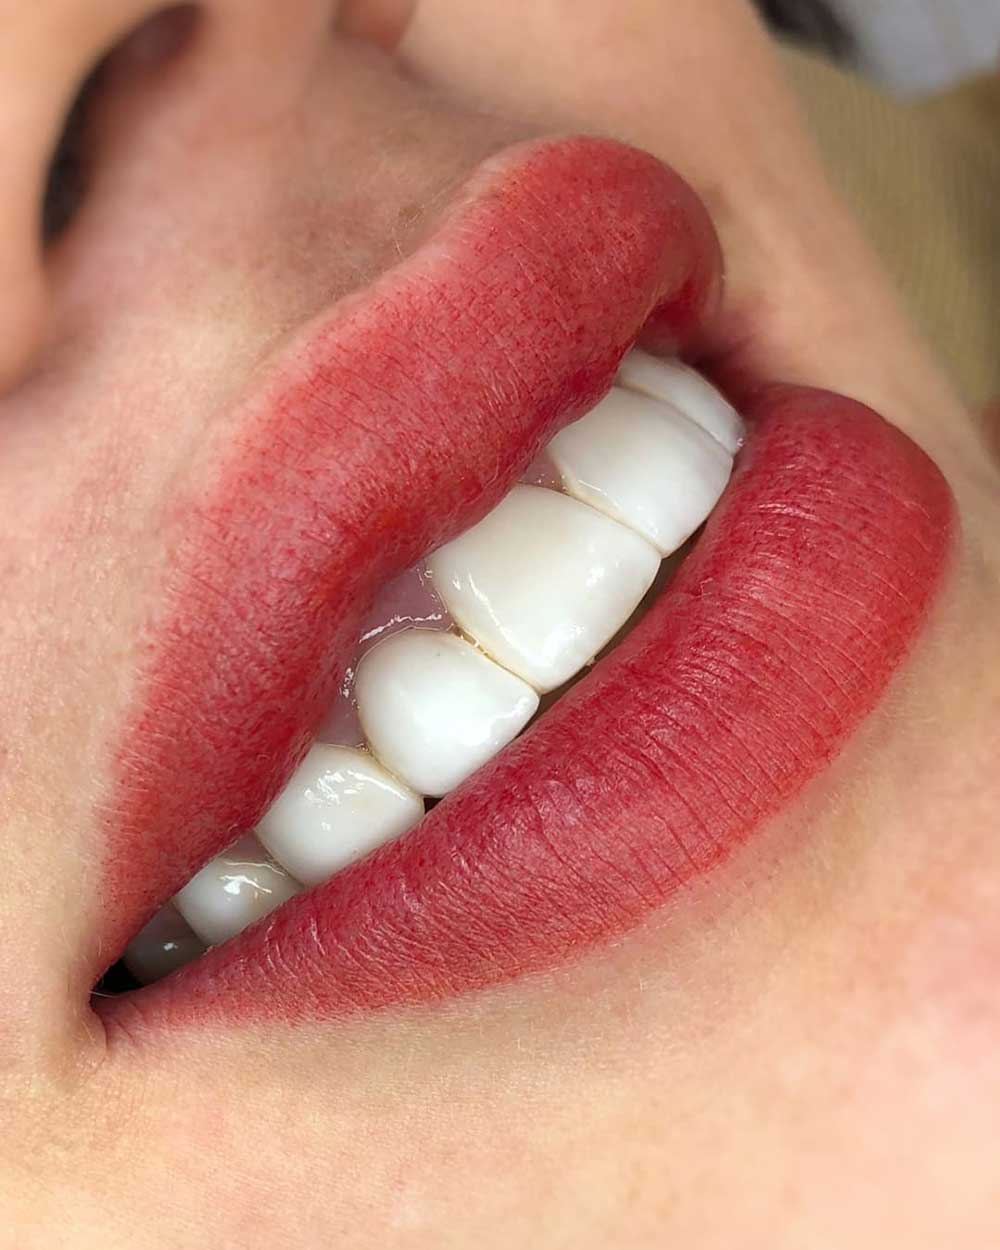 What Color Can Aquarelle Lips Be?